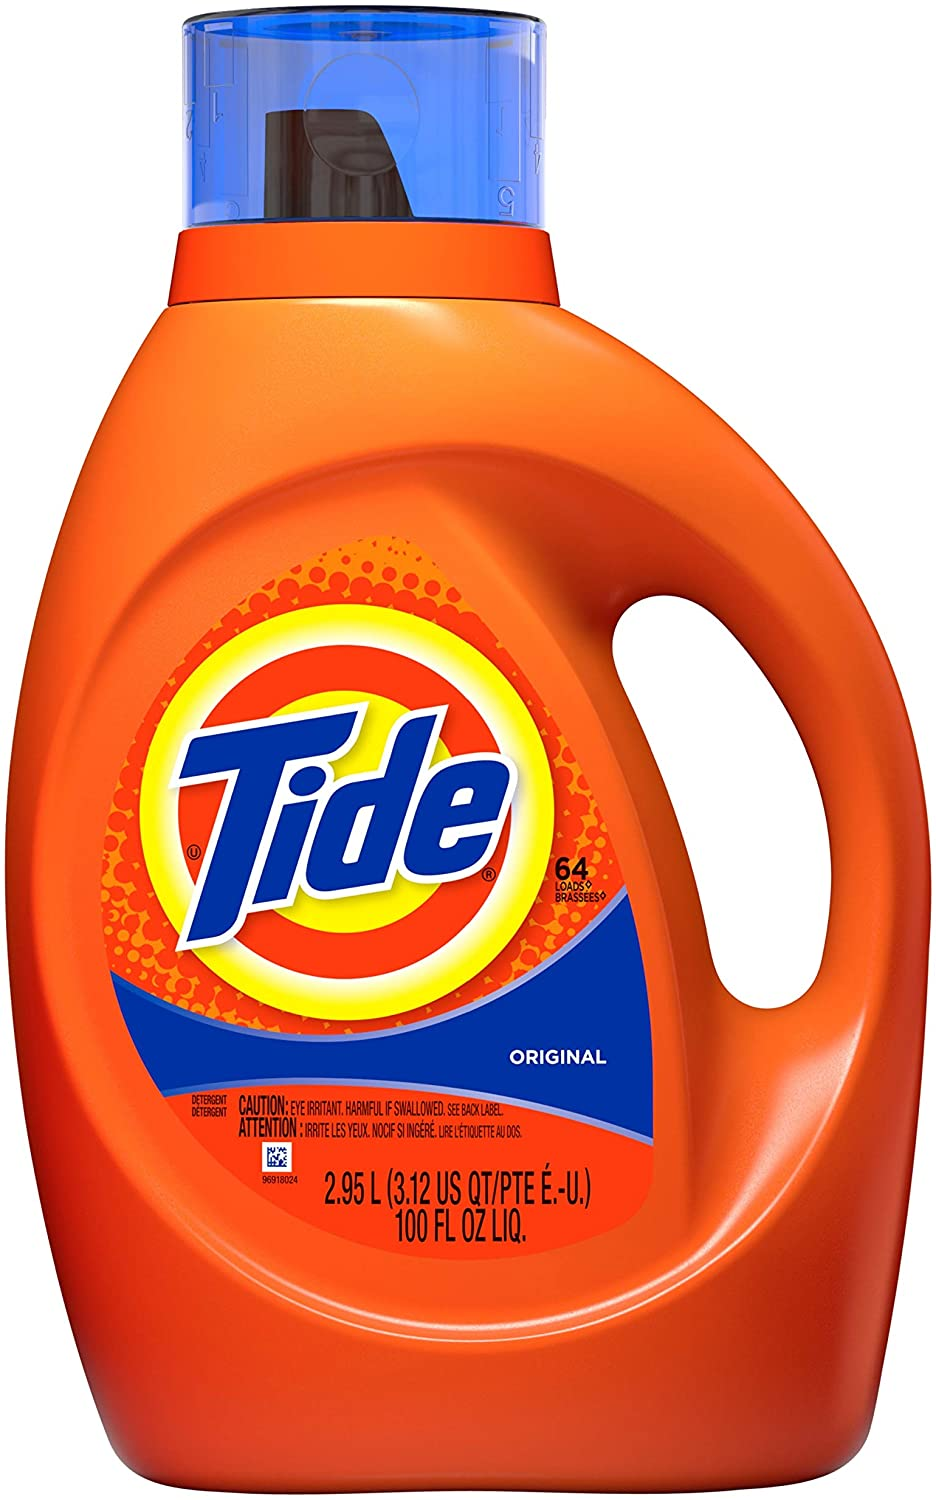 Tide Original Scent Liquid Laundry Detergent, 100 Fl Oz (Packaging May Vary)